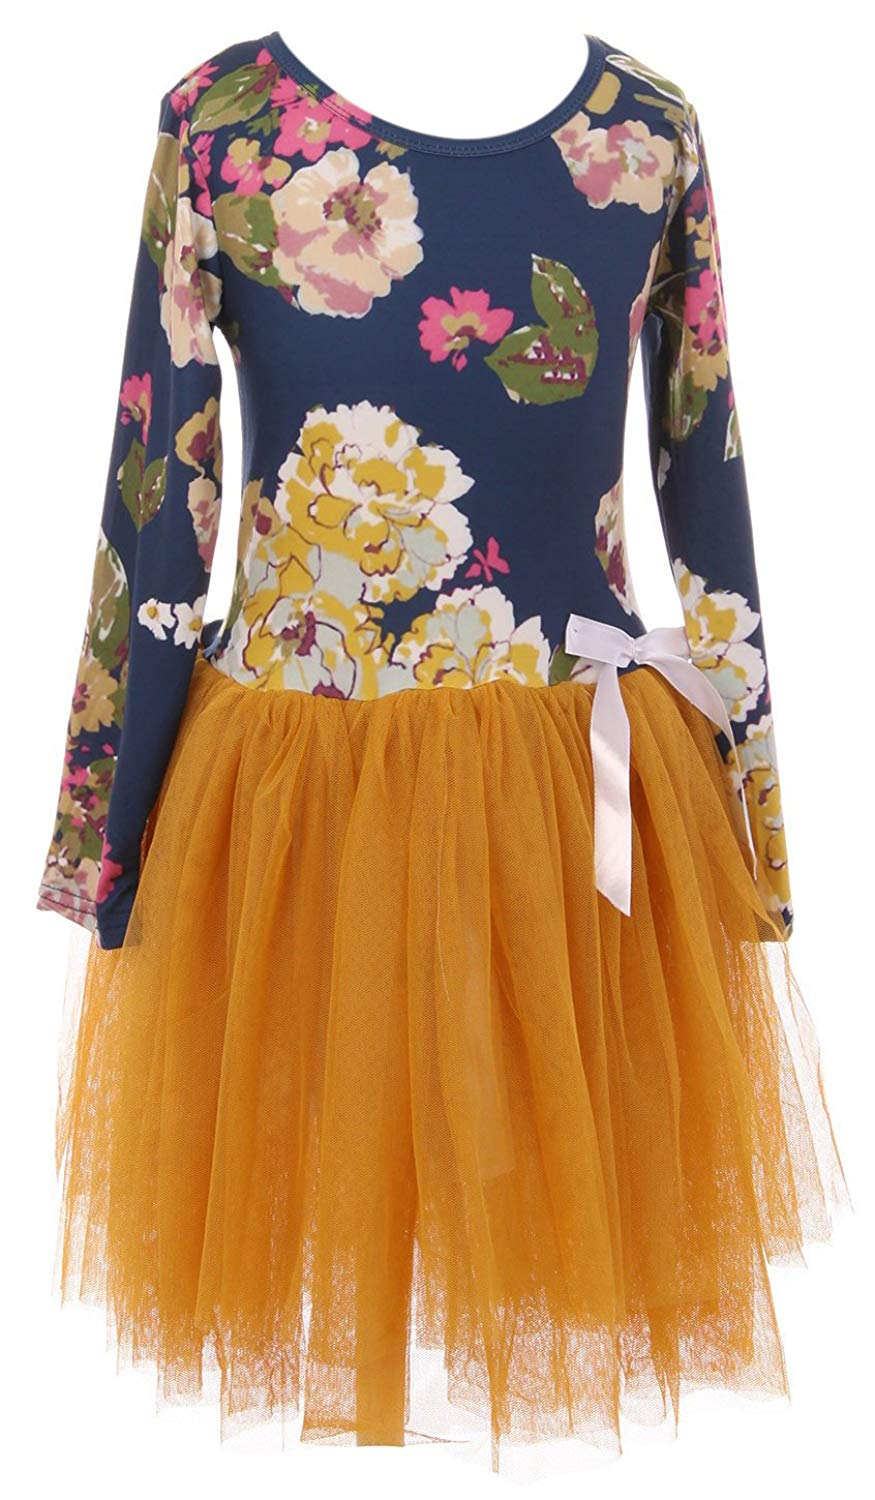 Cheap yellow flower girl find yellow flower girl deals on line at little girl kids long sleeve navy flower top yellow bottom flower girl dress 2t 8 izmirmasajfo